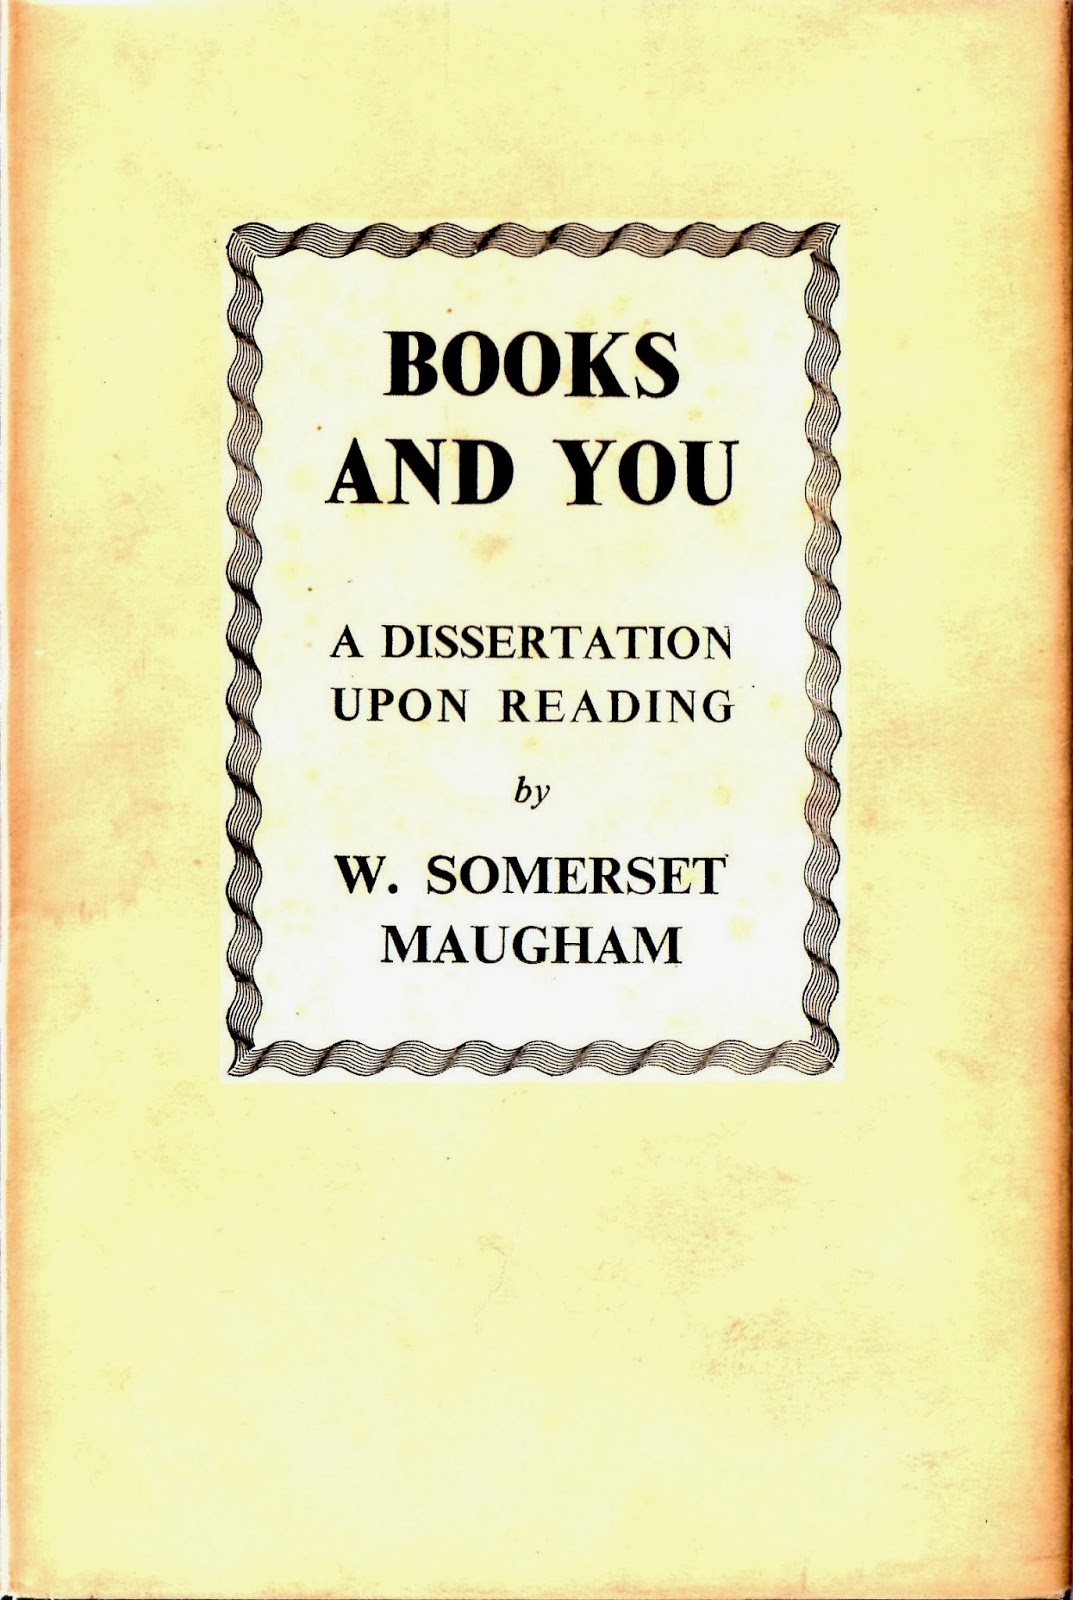 mabel by w. s. maugham essay The luncheon - william somerset maugham  the analysis of short story mabel by william somerset maugham  essay on mr w somerset maugham's mr know-all.